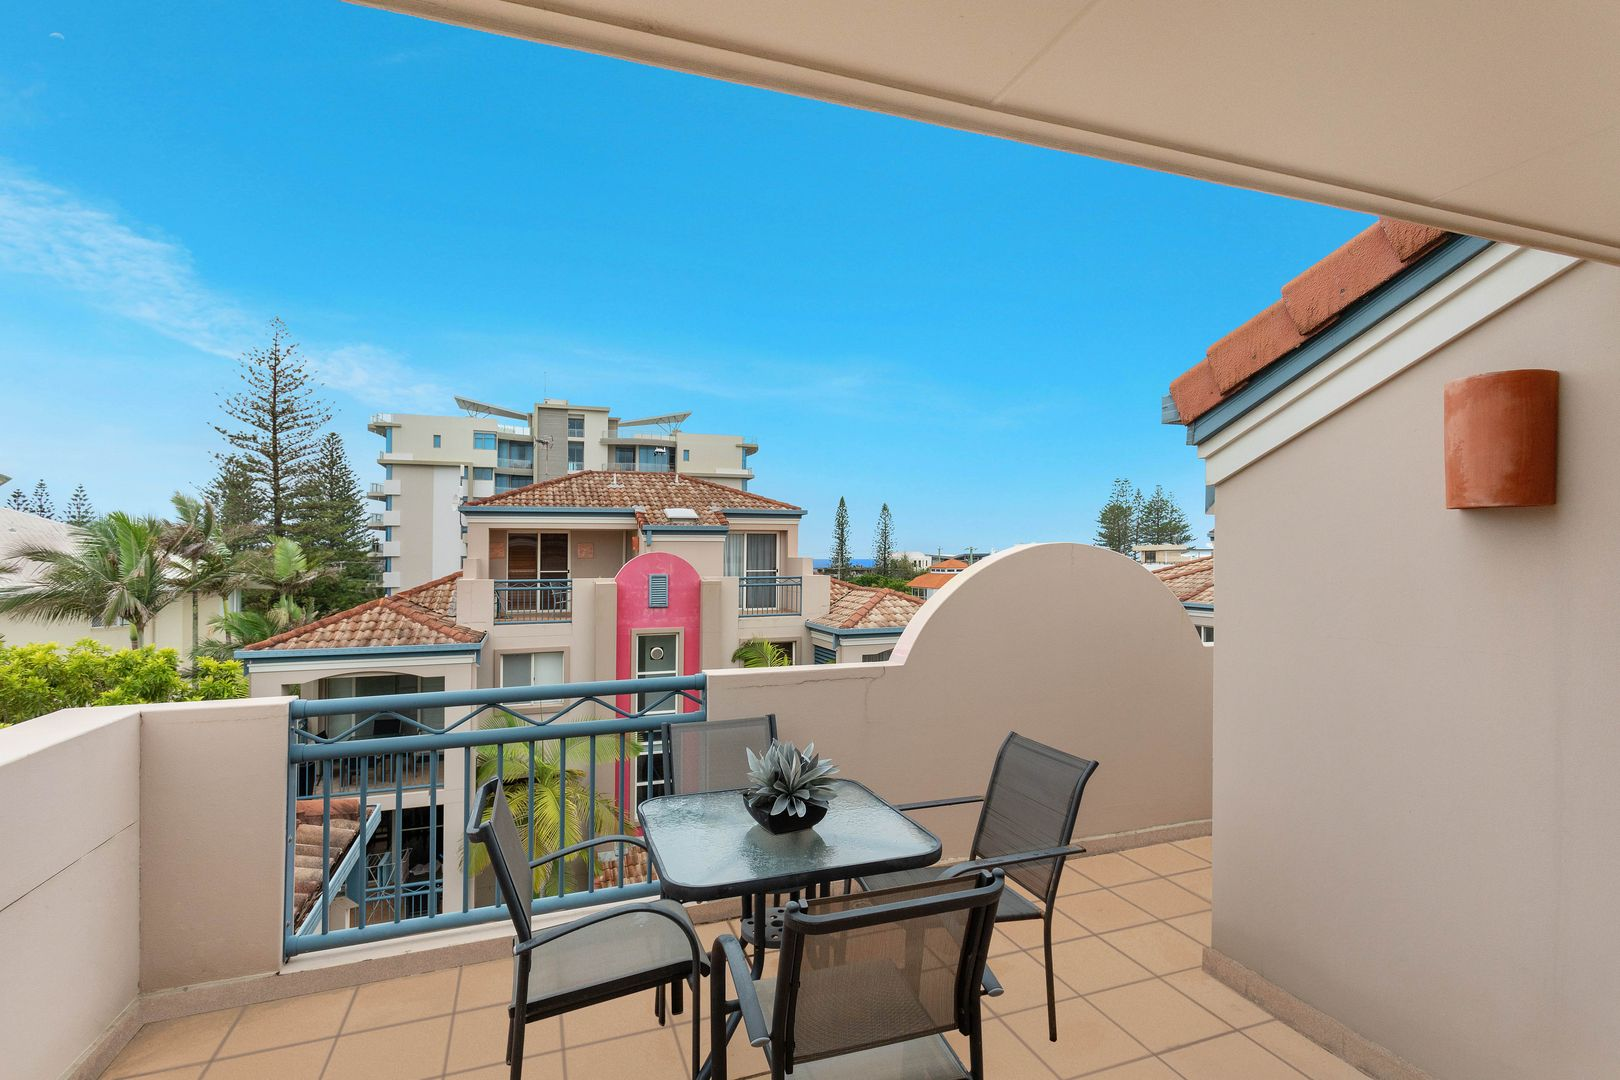 23/21-25 Peerless Avenue, Mermaid Beach QLD 4218, Image 1